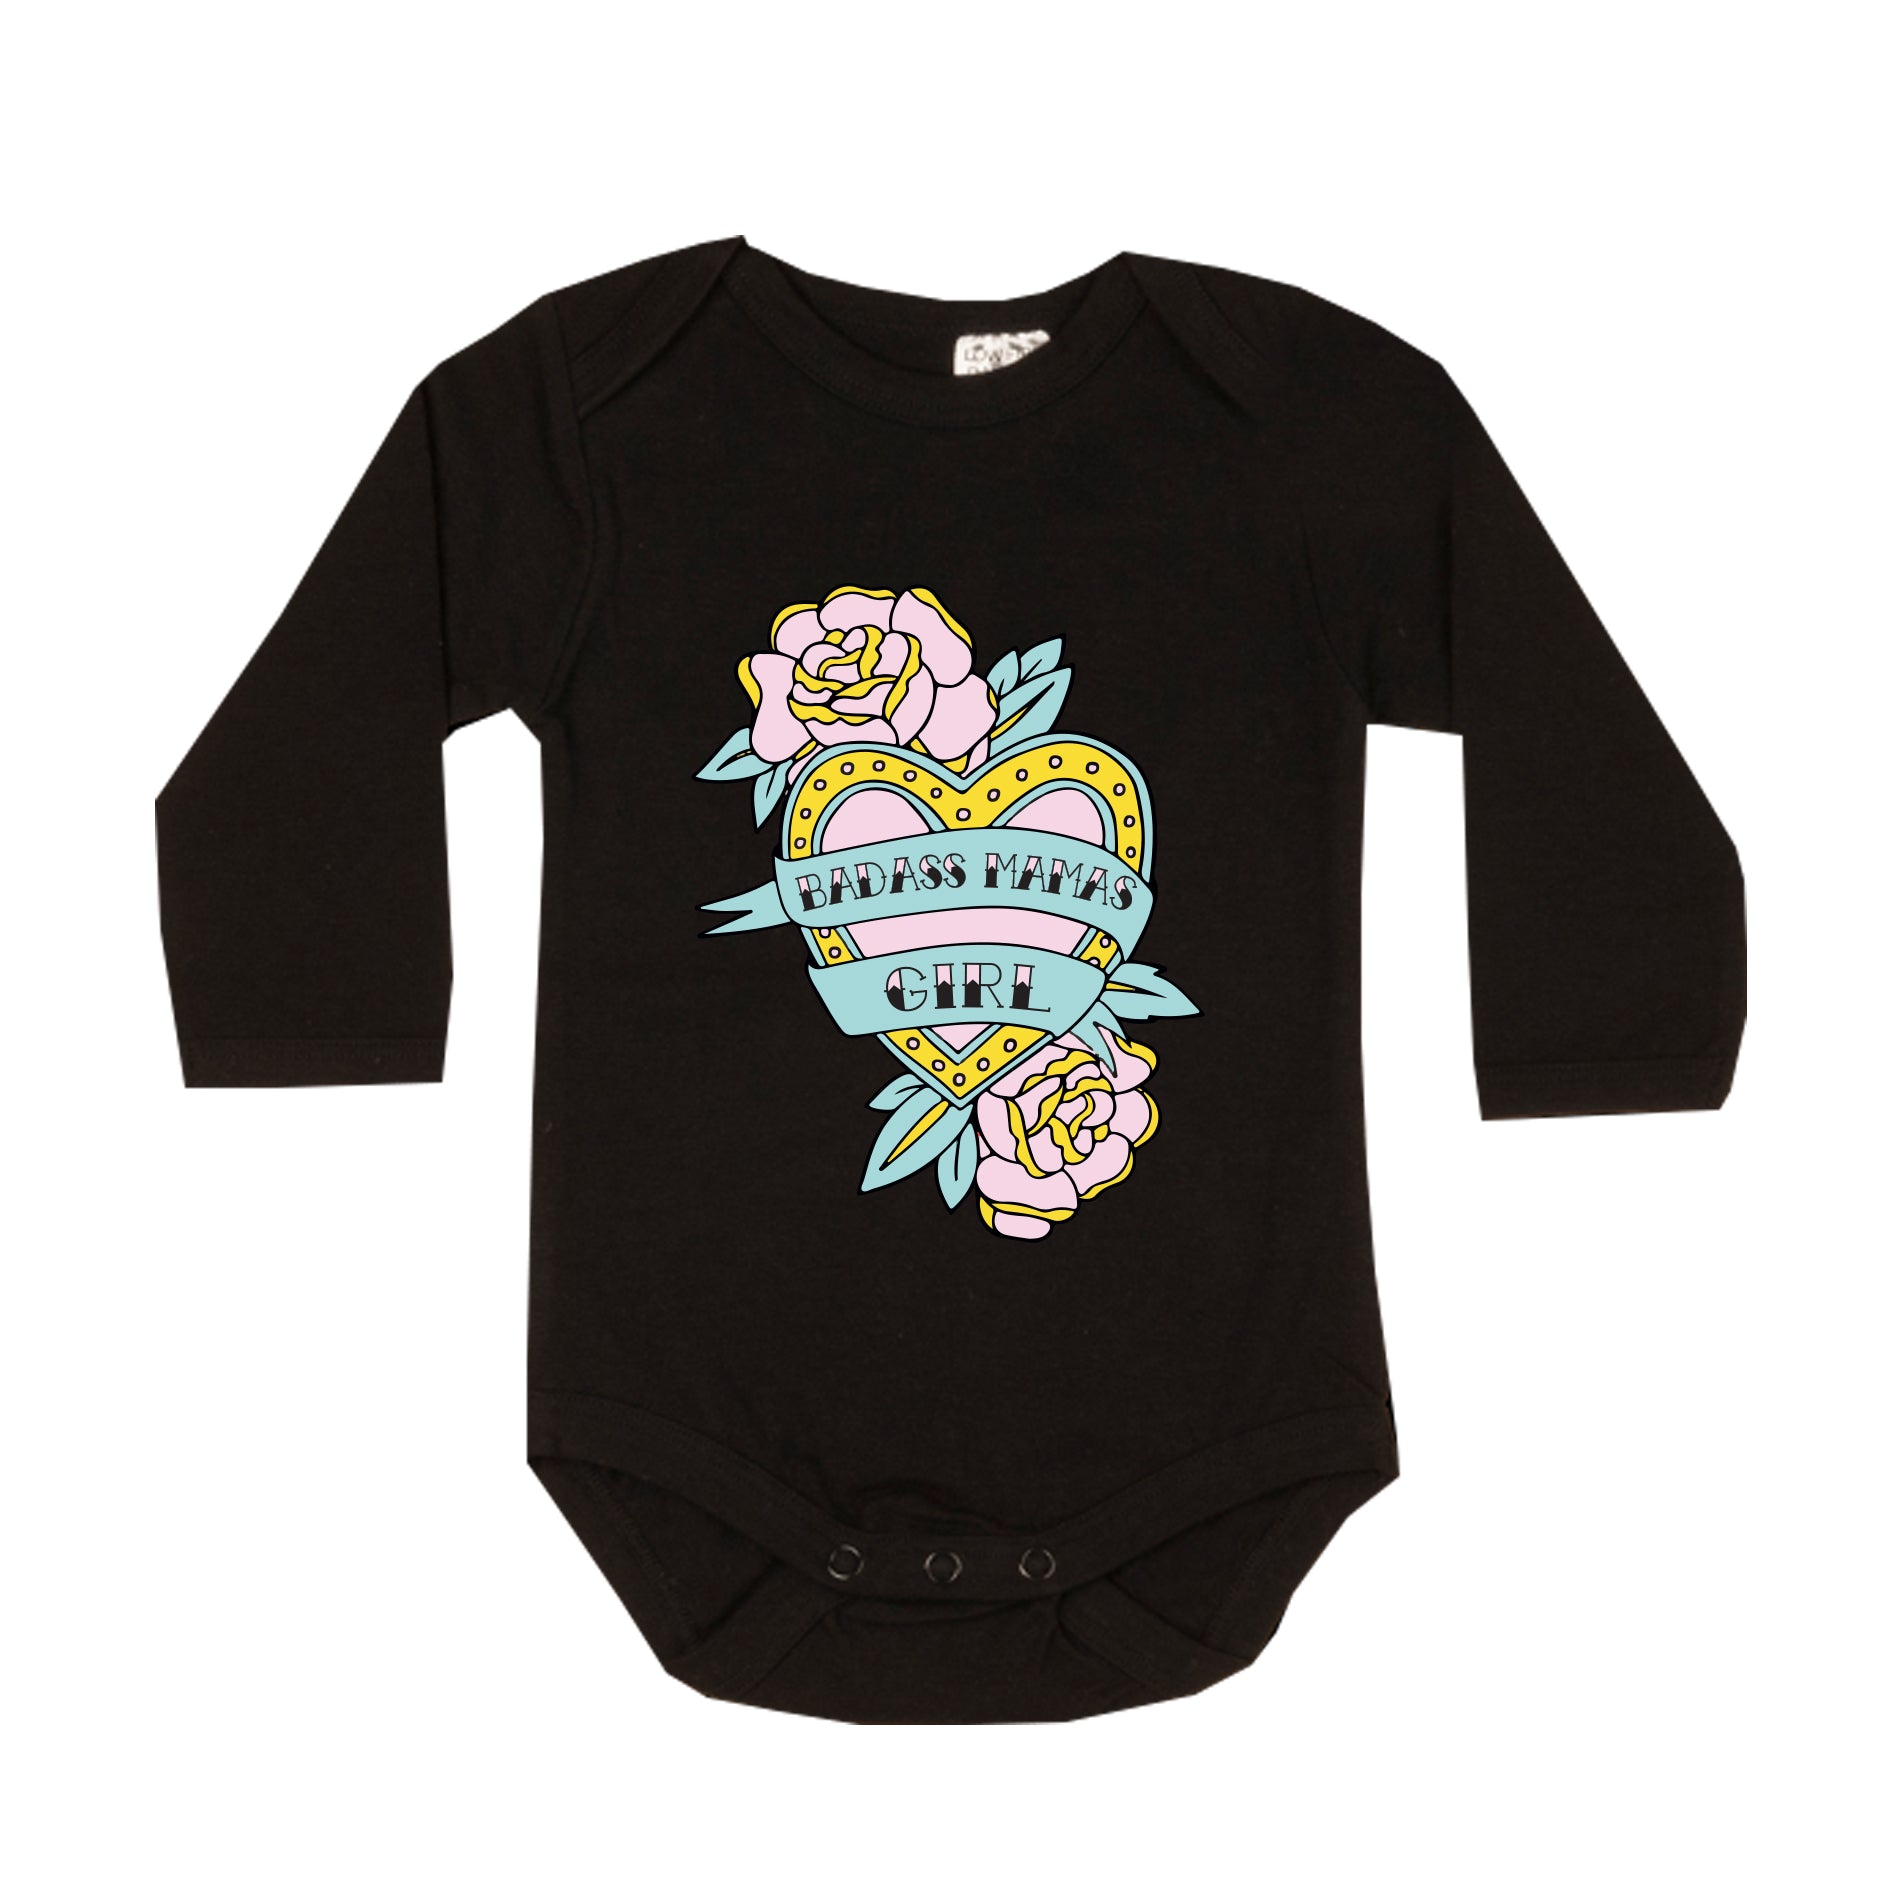 Badass Mamas Girl Long-sleeve Onesie